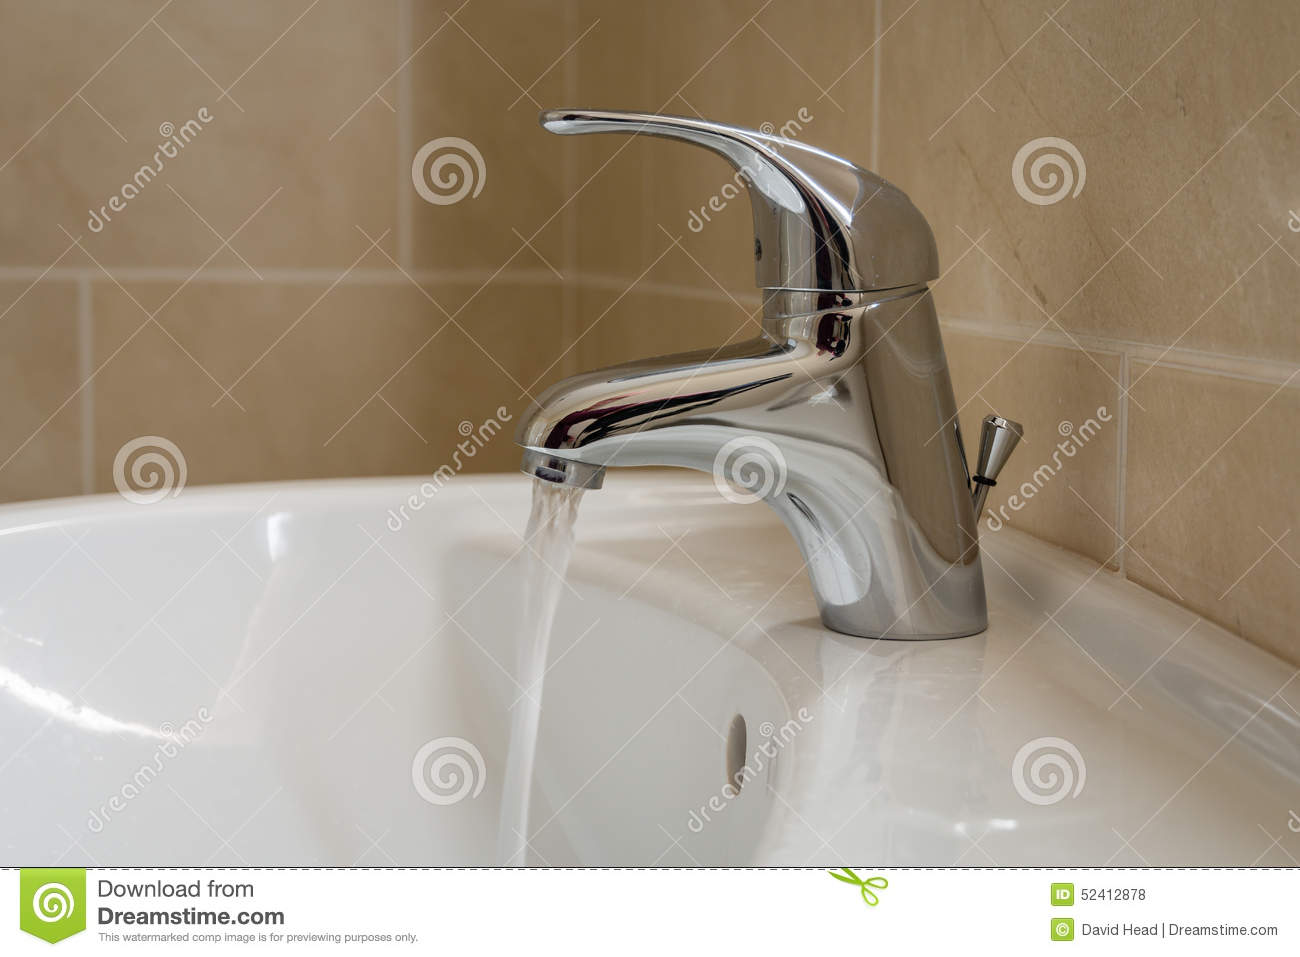 Bathroom sink tap with running water stock photo image for Bathroom sink lever taps